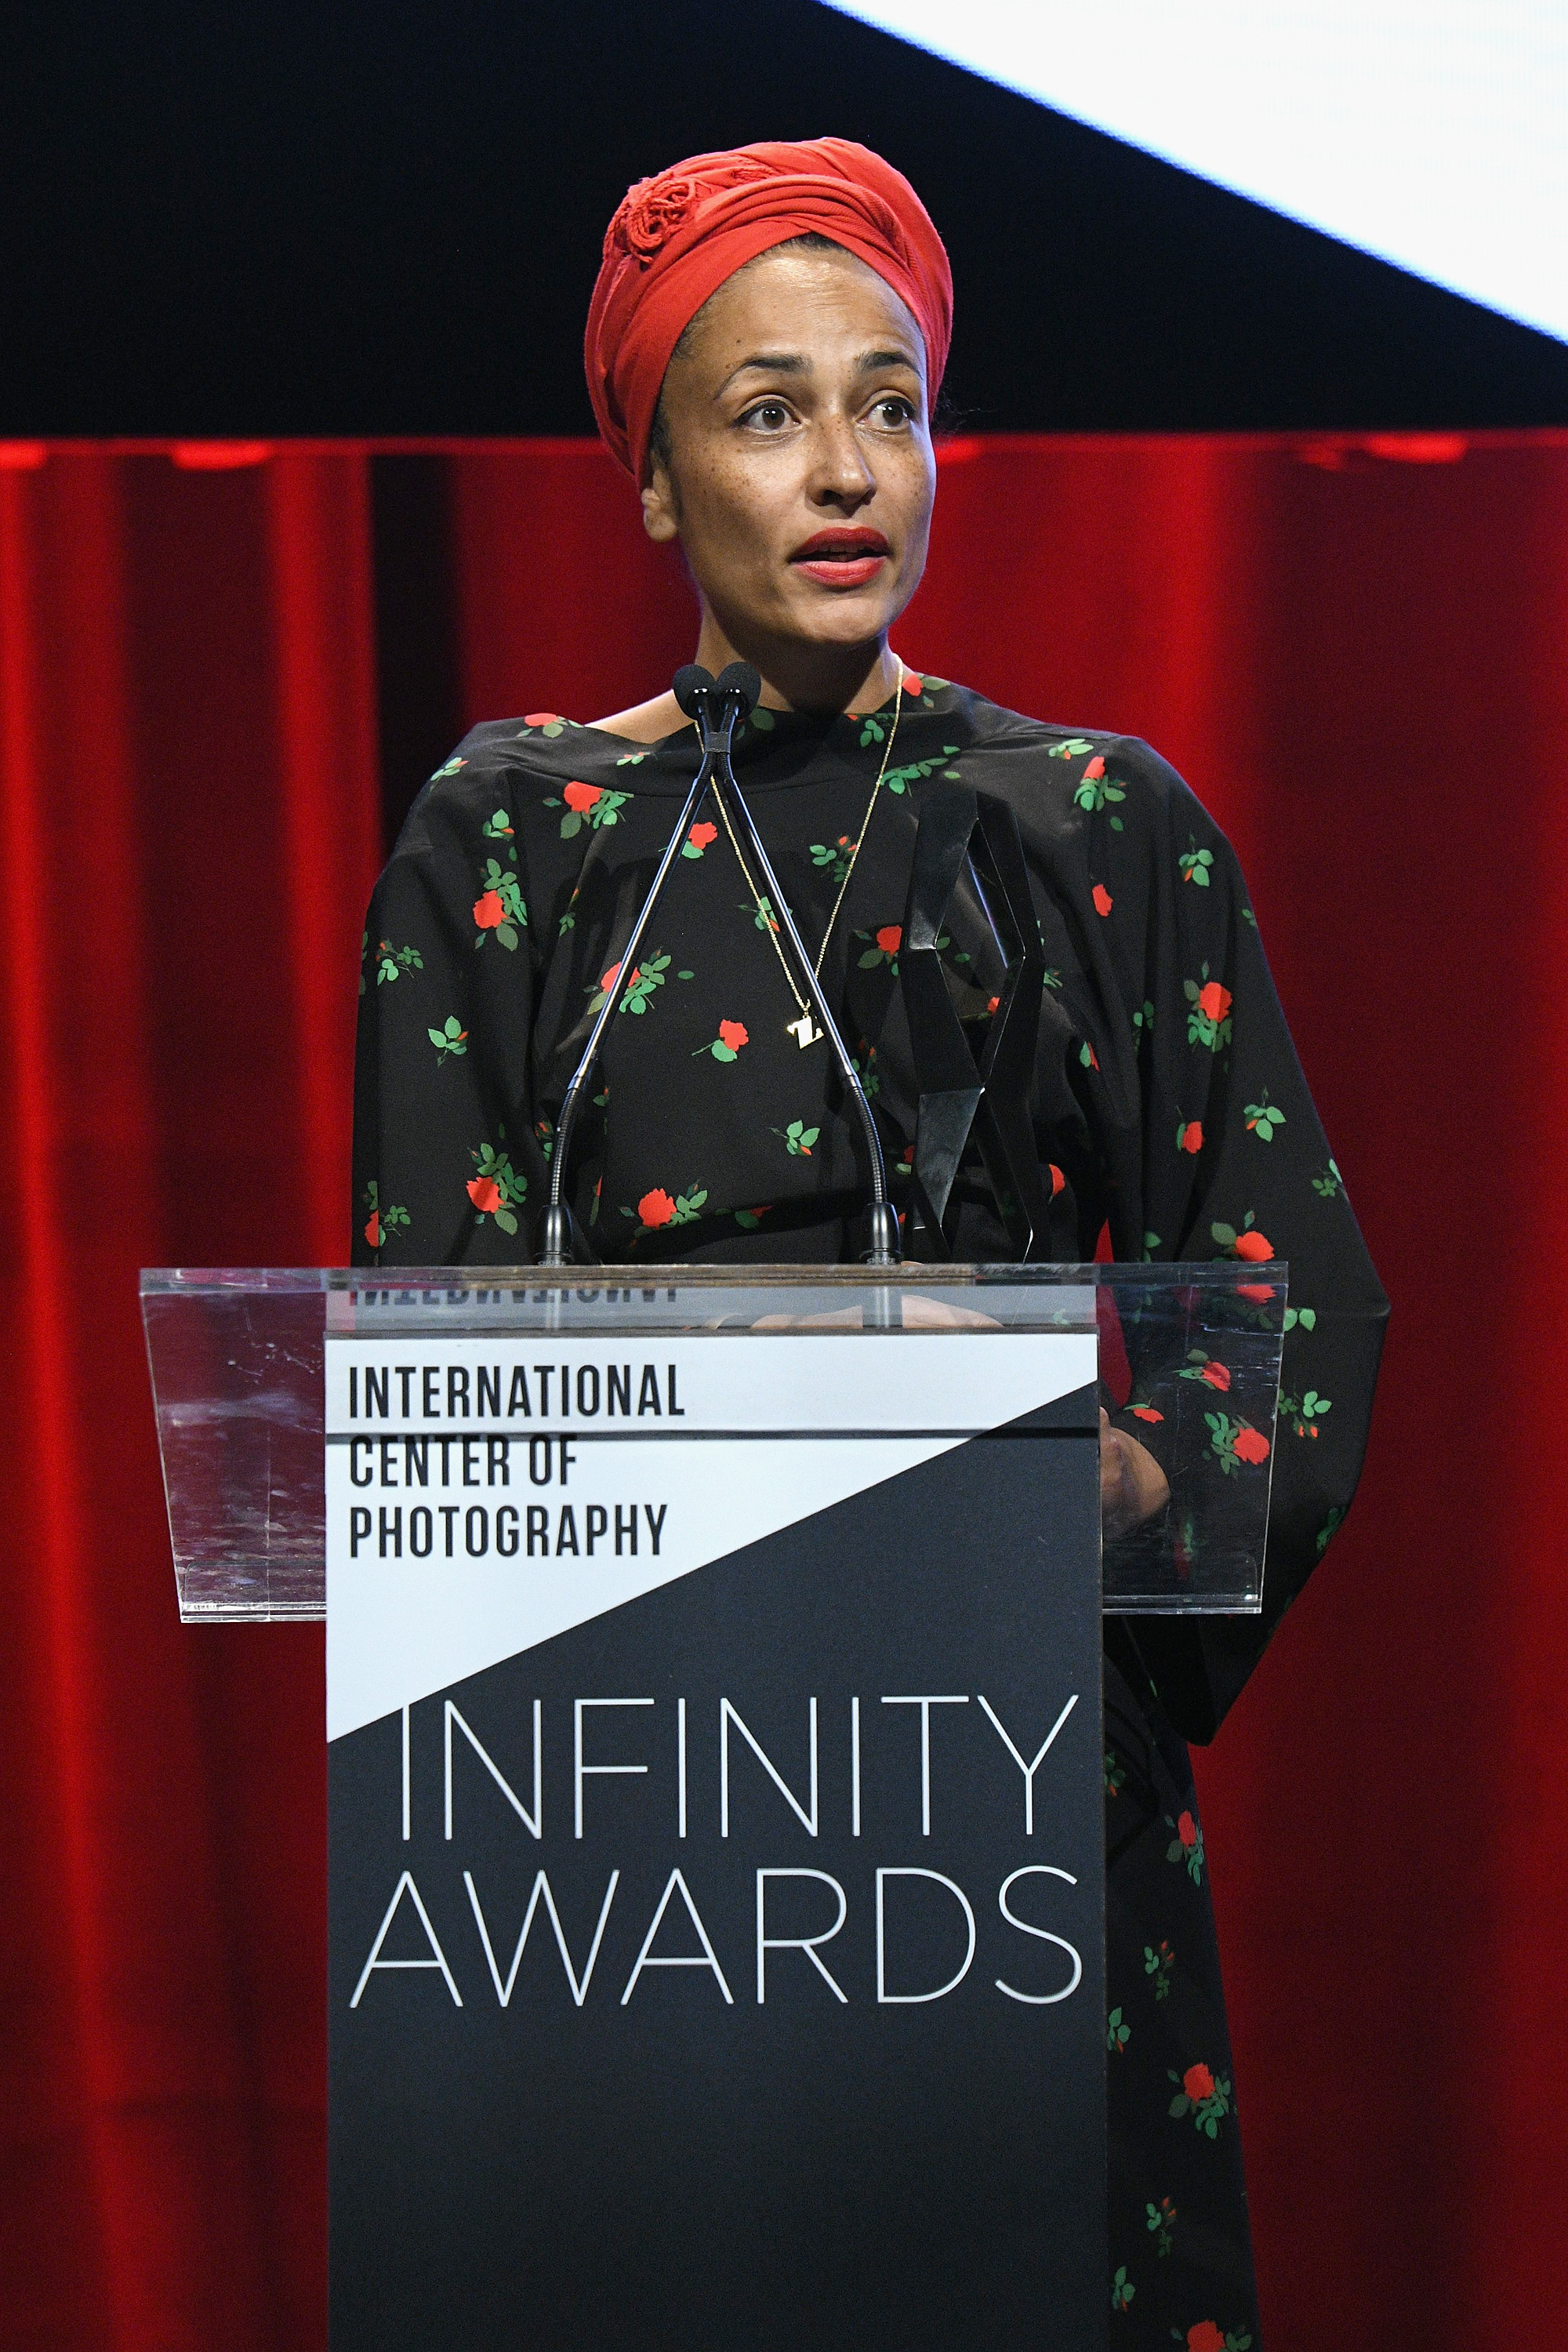 NEW YORK, NY - APRIL 02: Honoree and novelist Zadie Smith speaks onstage during The International Center Of Photography's 35th Annual Infinity Awards at The Ziegfeld Ballroom on April 2, 2019 in New York City. (Photo by Bryan Bedder/Getty Images for International Center of Photography)